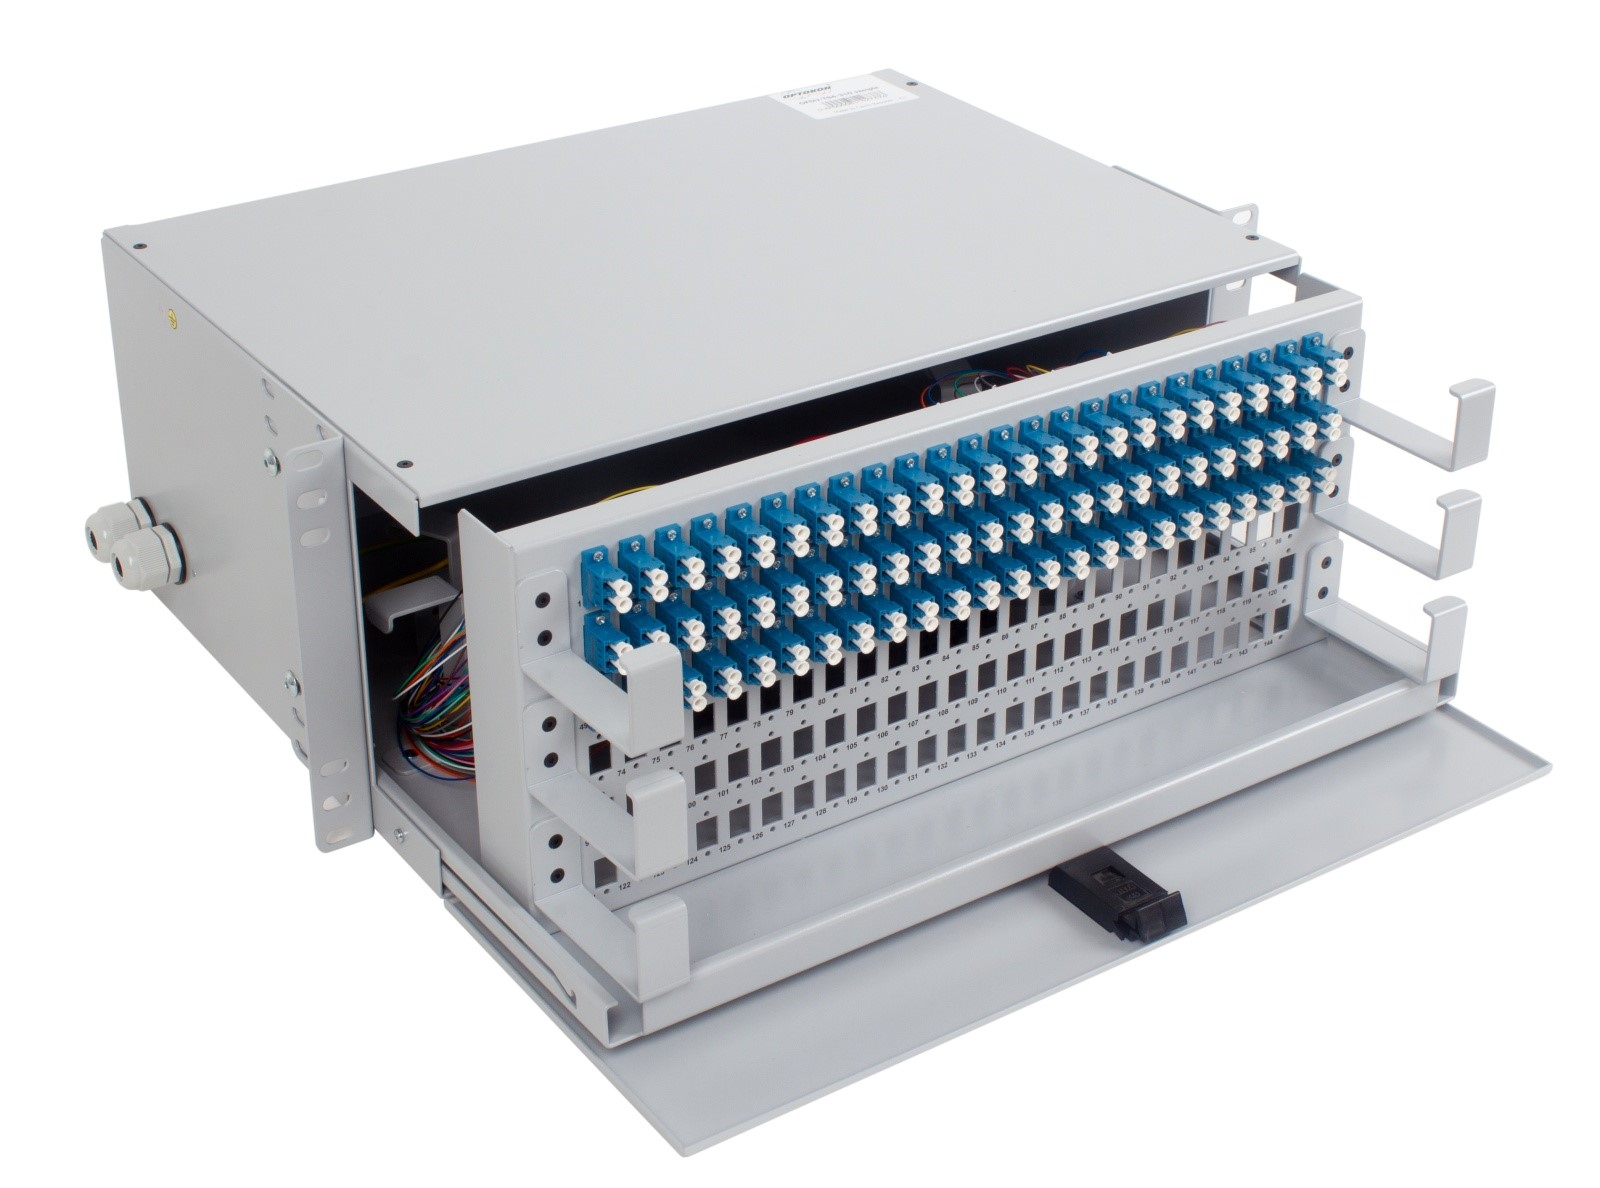 OFDU-TS4-310 Rack Mount Splice and Termination Cabinet